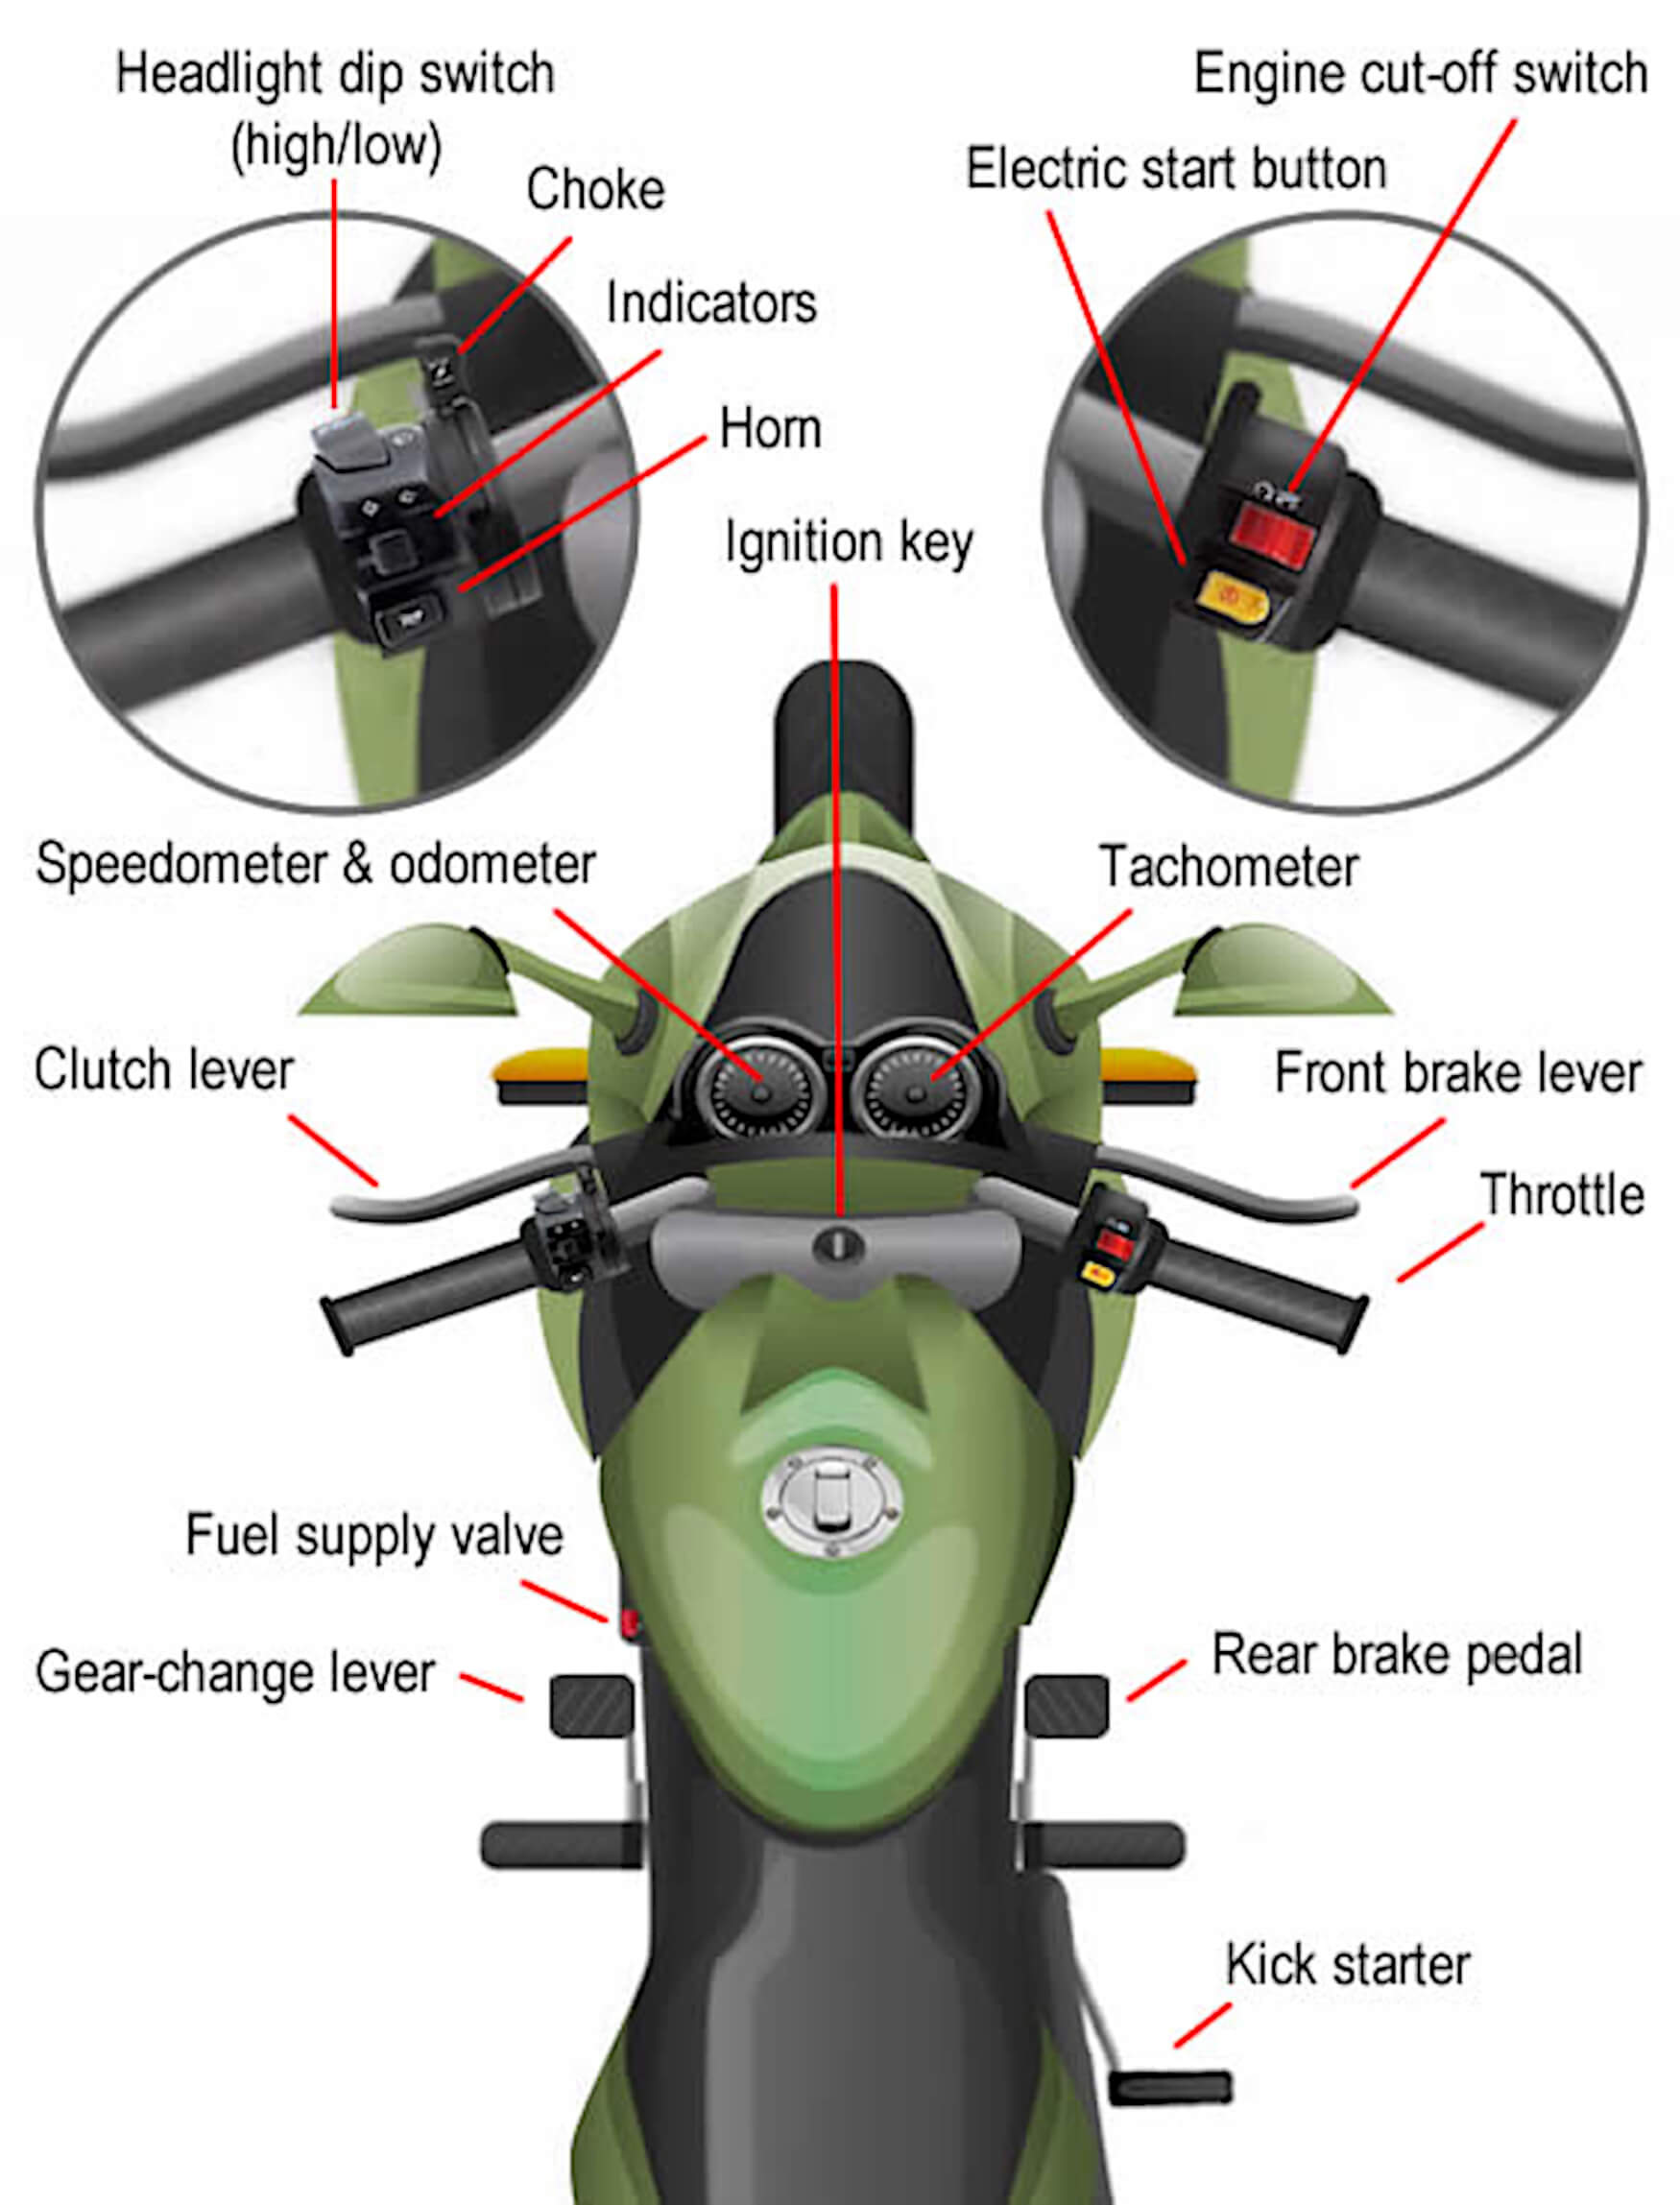 Motorcycle Controls Diagram 1 Bestbeginnermotorcycles Helicopter Parts Of Common